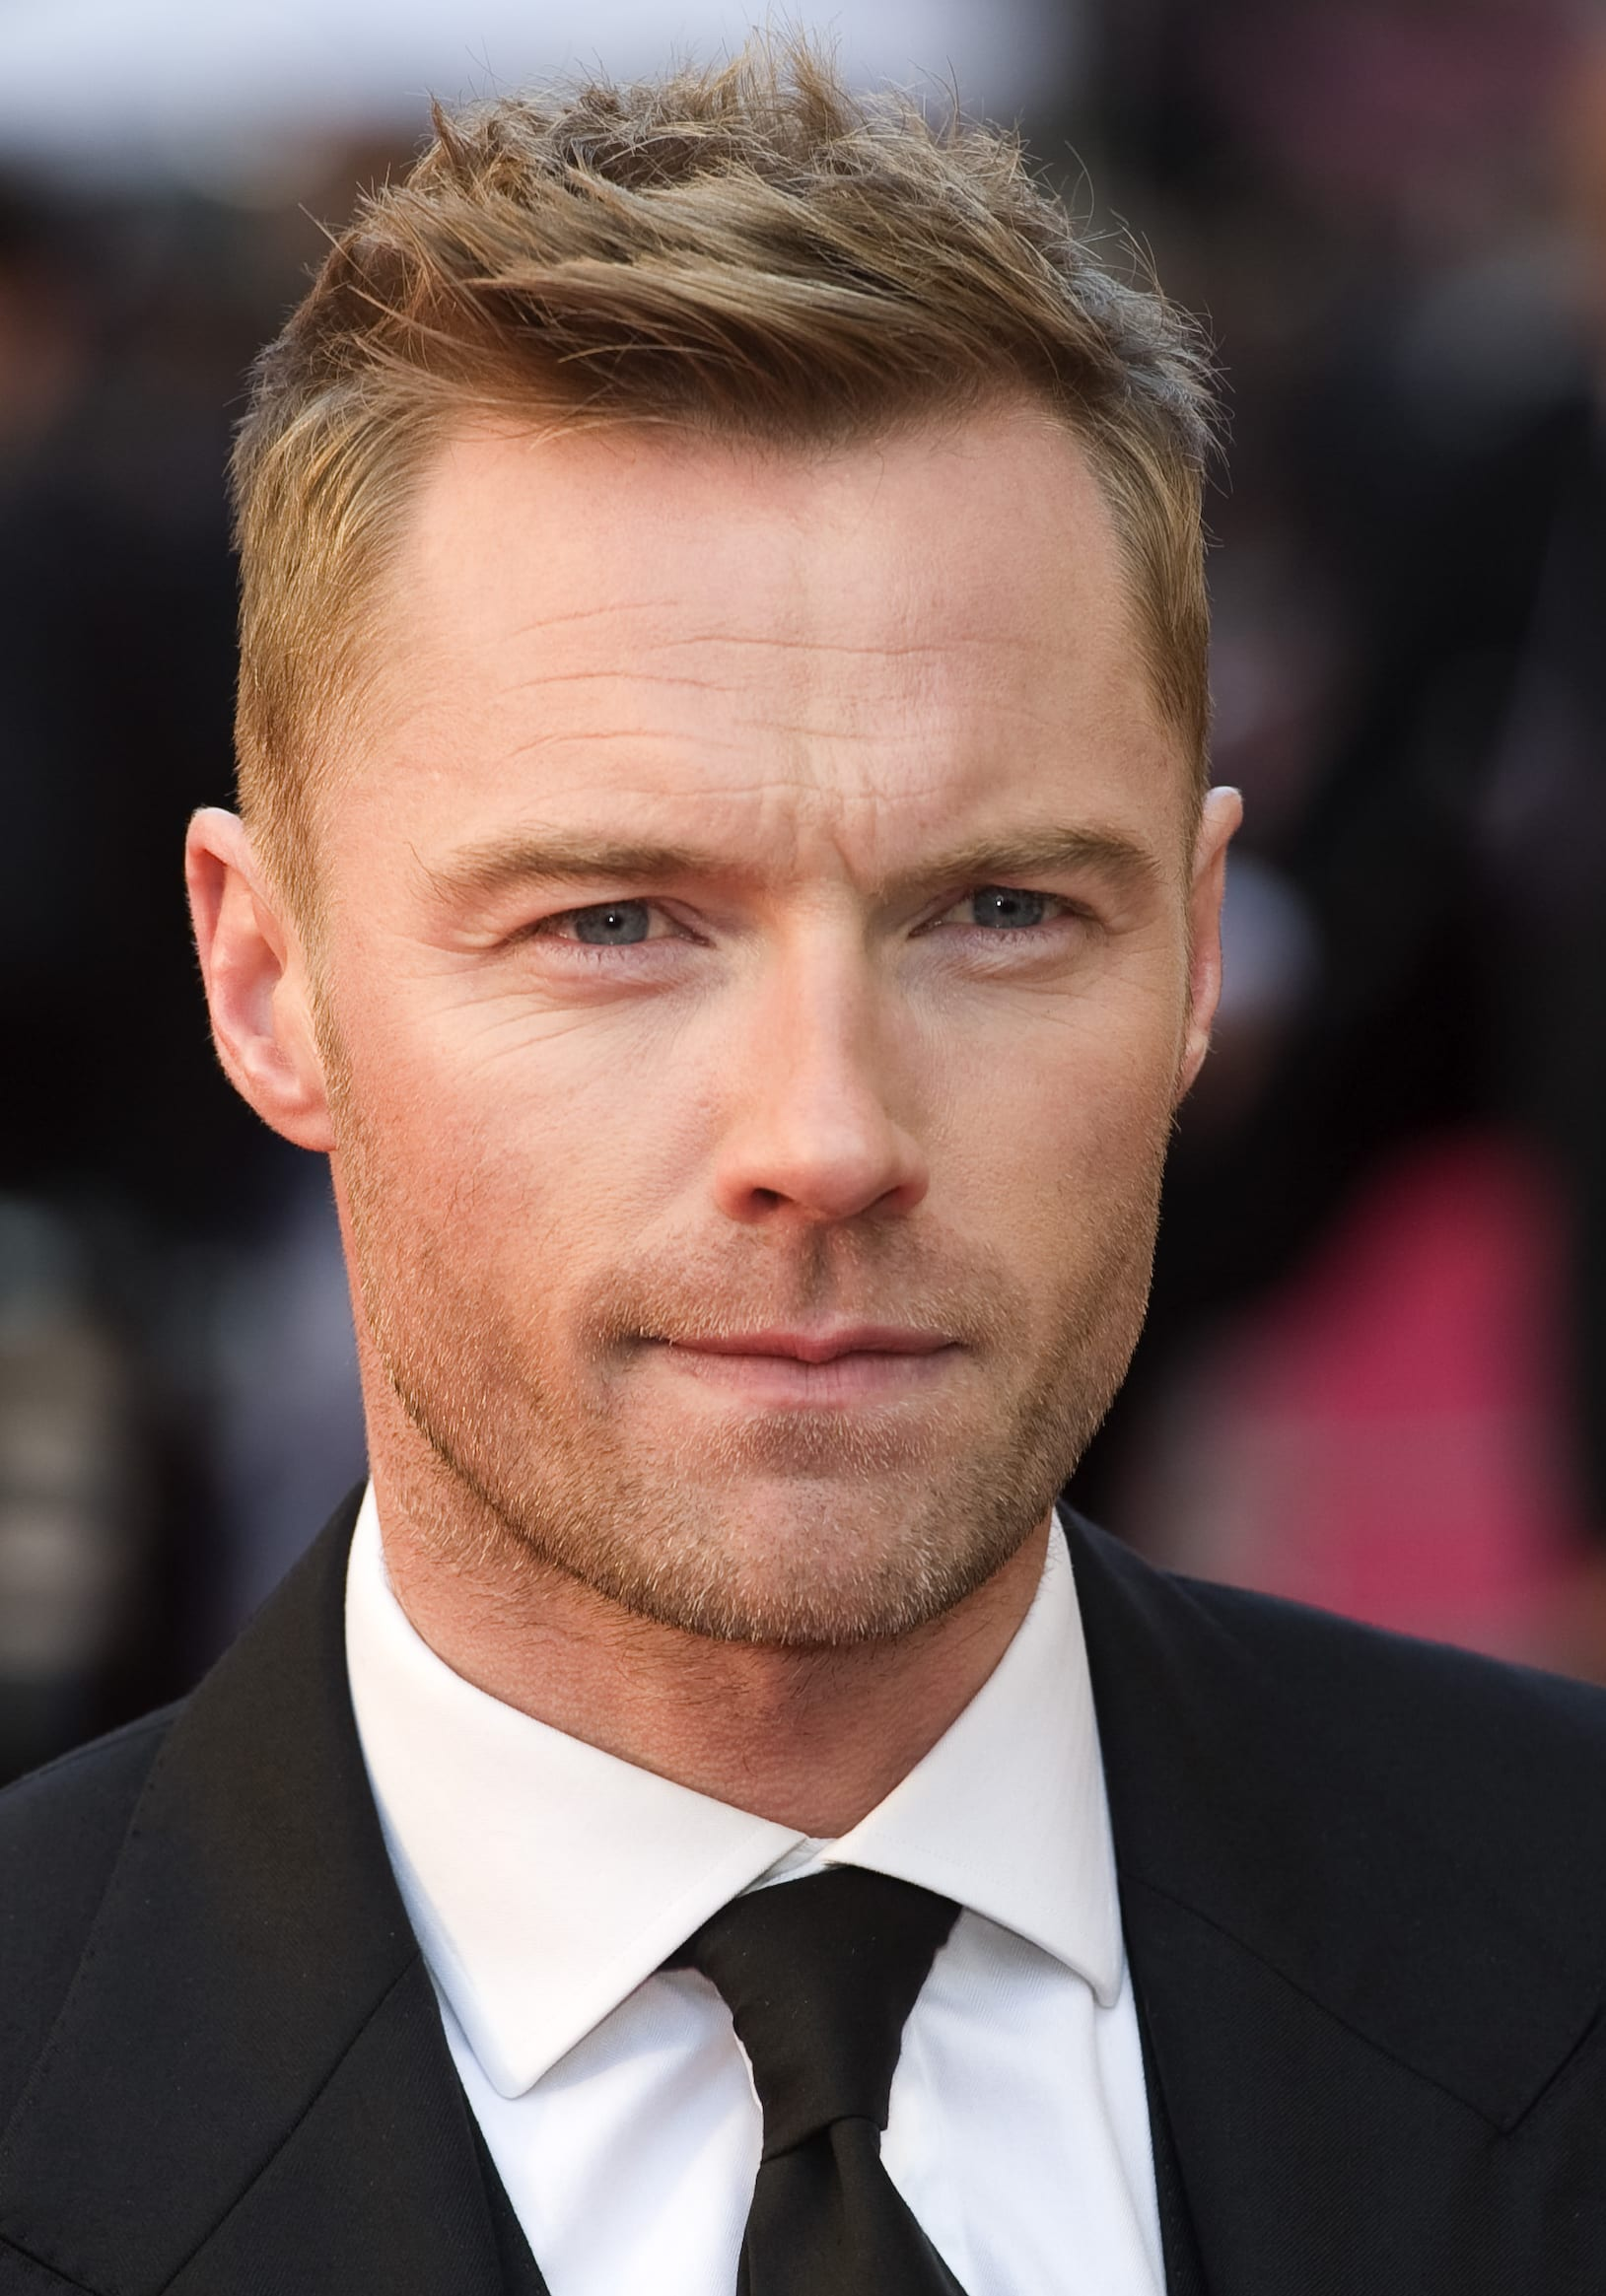 Ronan Keating's Natural Taper and Textured Top